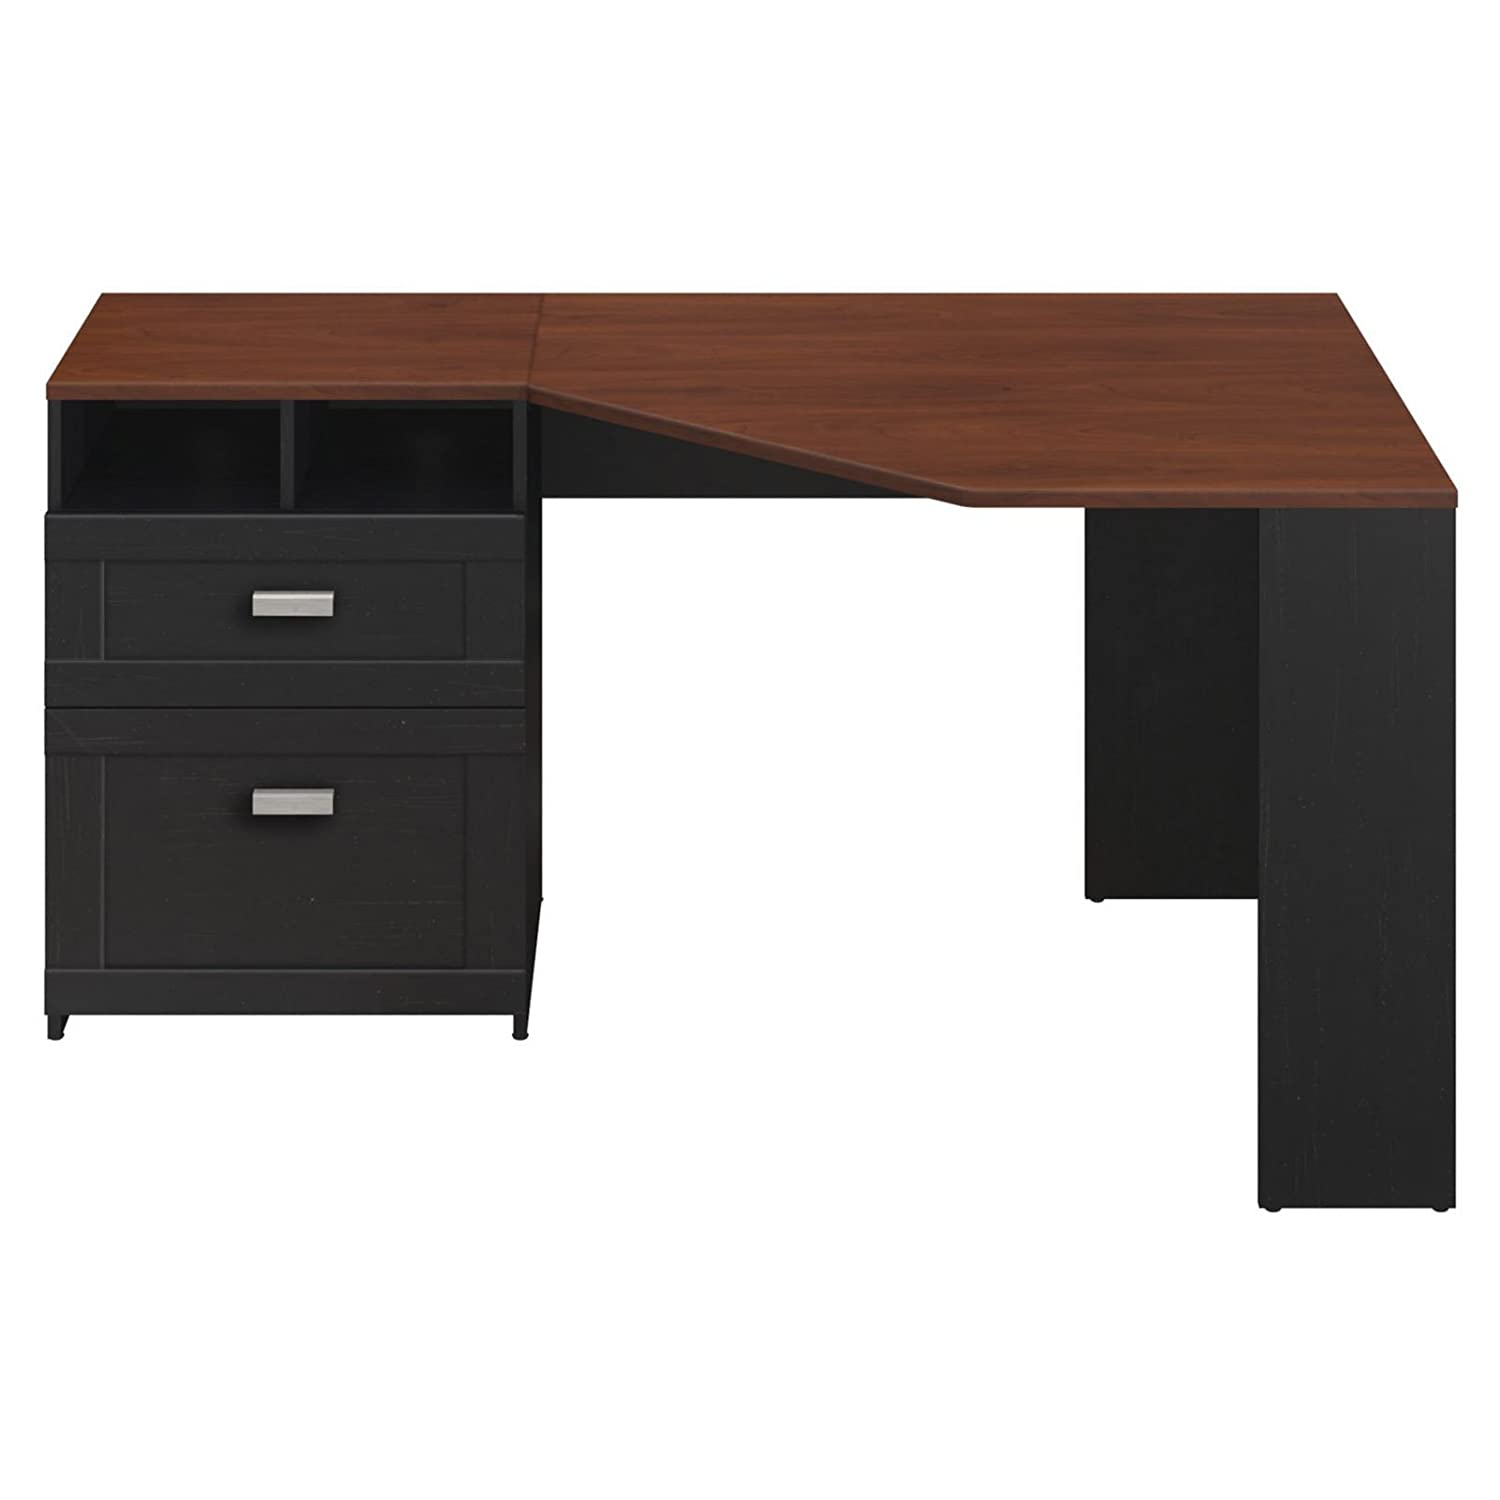 Amazon com  Wheaton Collection Reversible Corner Desk  Kitchen   Dining. Amazon com  Wheaton Collection Reversible Corner Desk  Kitchen